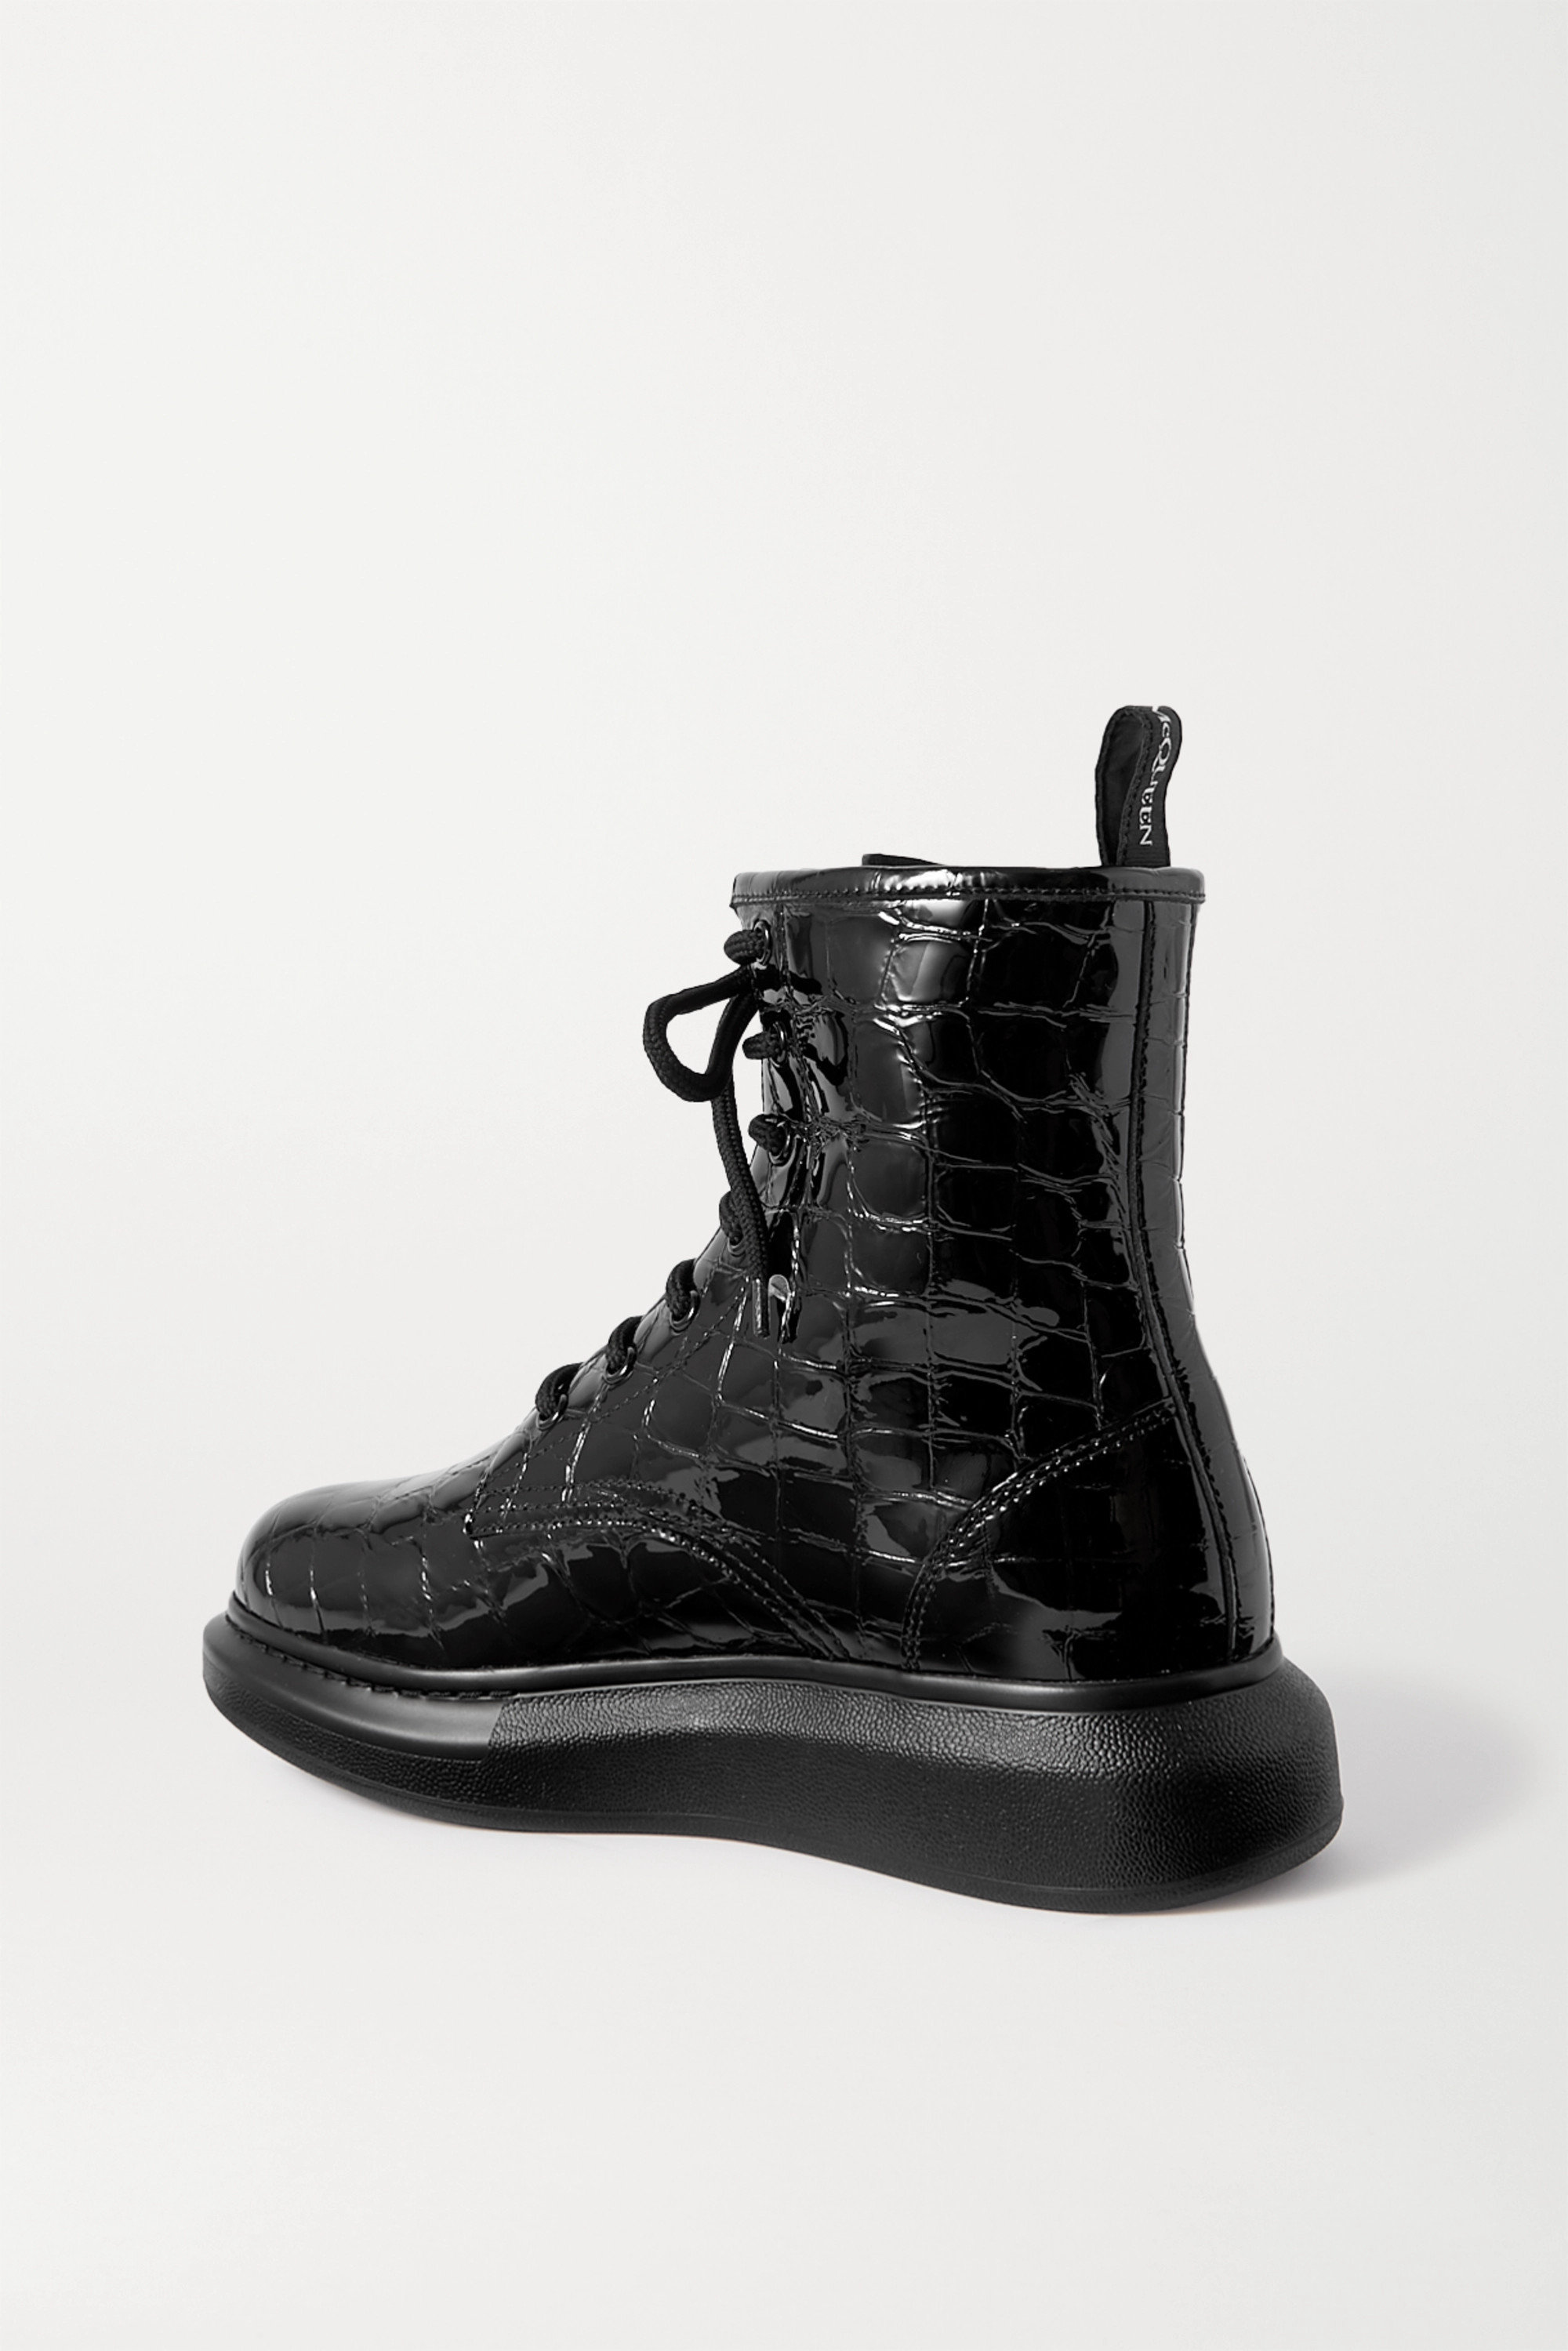 Black Croc-effect Patent-leather Exaggerated-sole Ankle Boots | Alexander Mcqueen